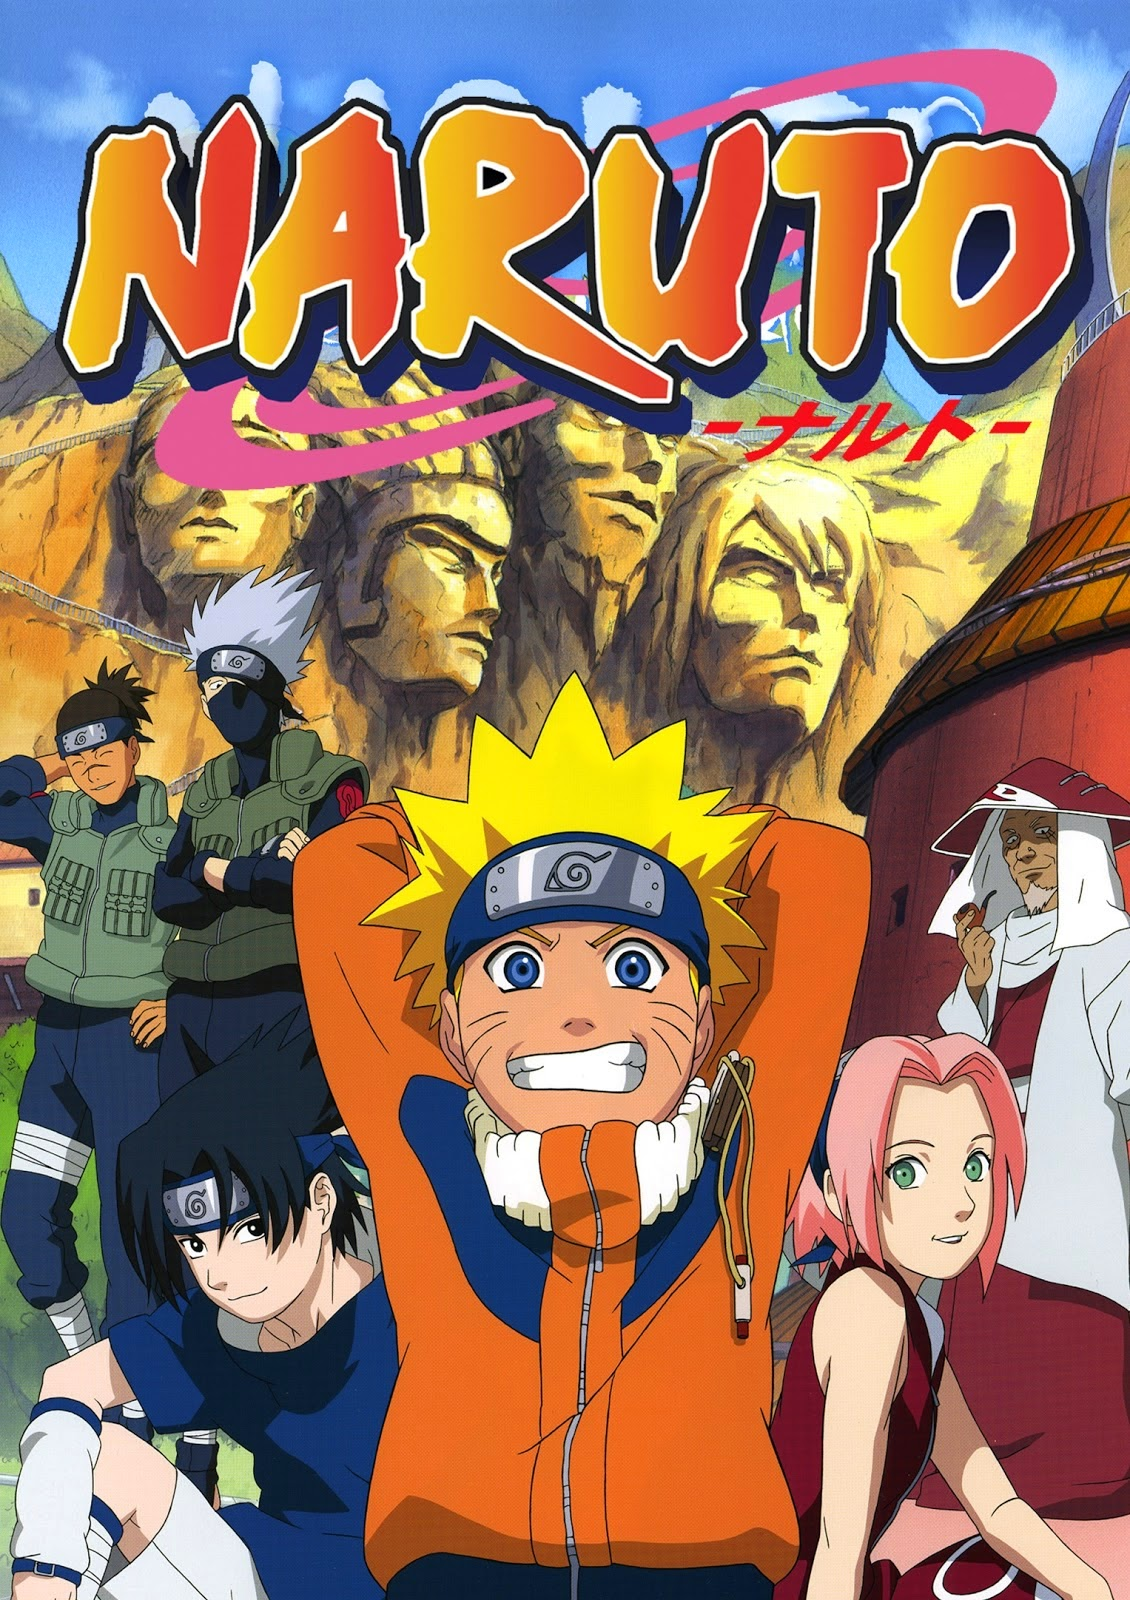 Download Naruto Clássico Legendado, Download Naruto Clássico, Download Naruto Clássico HD, Naruto Clássico, Assistir Naruto Clássico, Baixar Naruto HD, SD